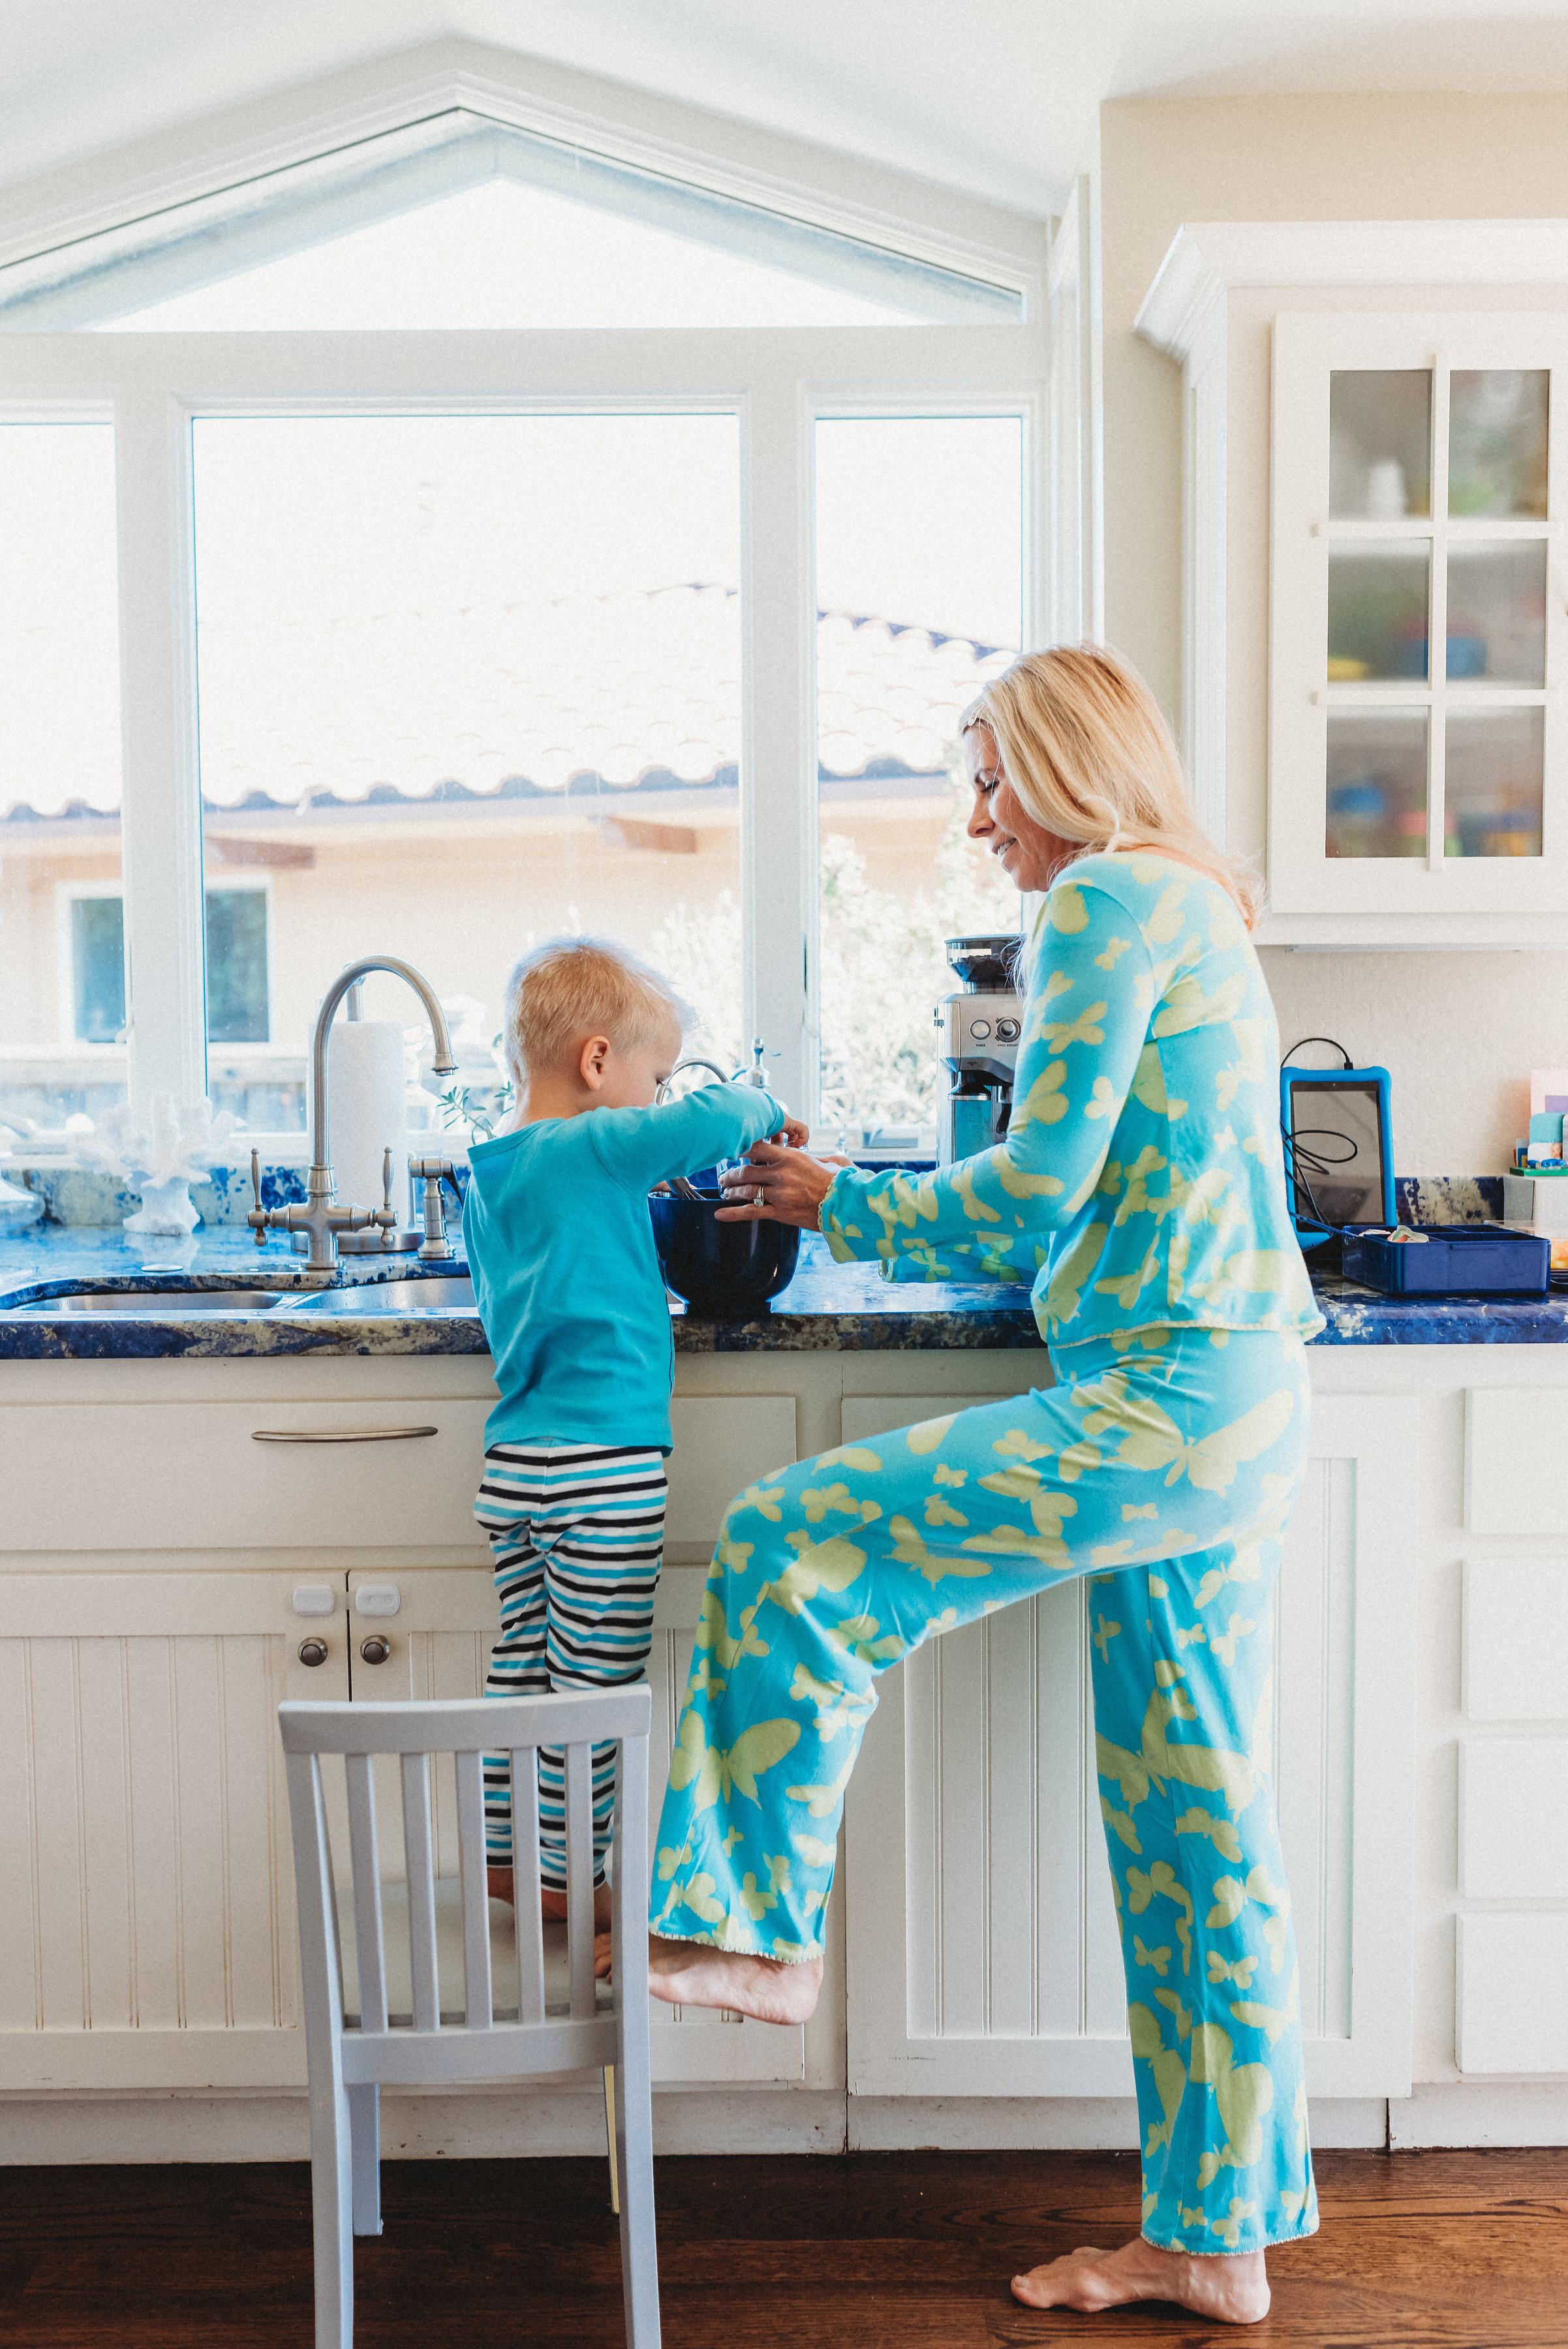 family pancakes morning routine mom of two toddlers pj mornings family time quality time15.jpg